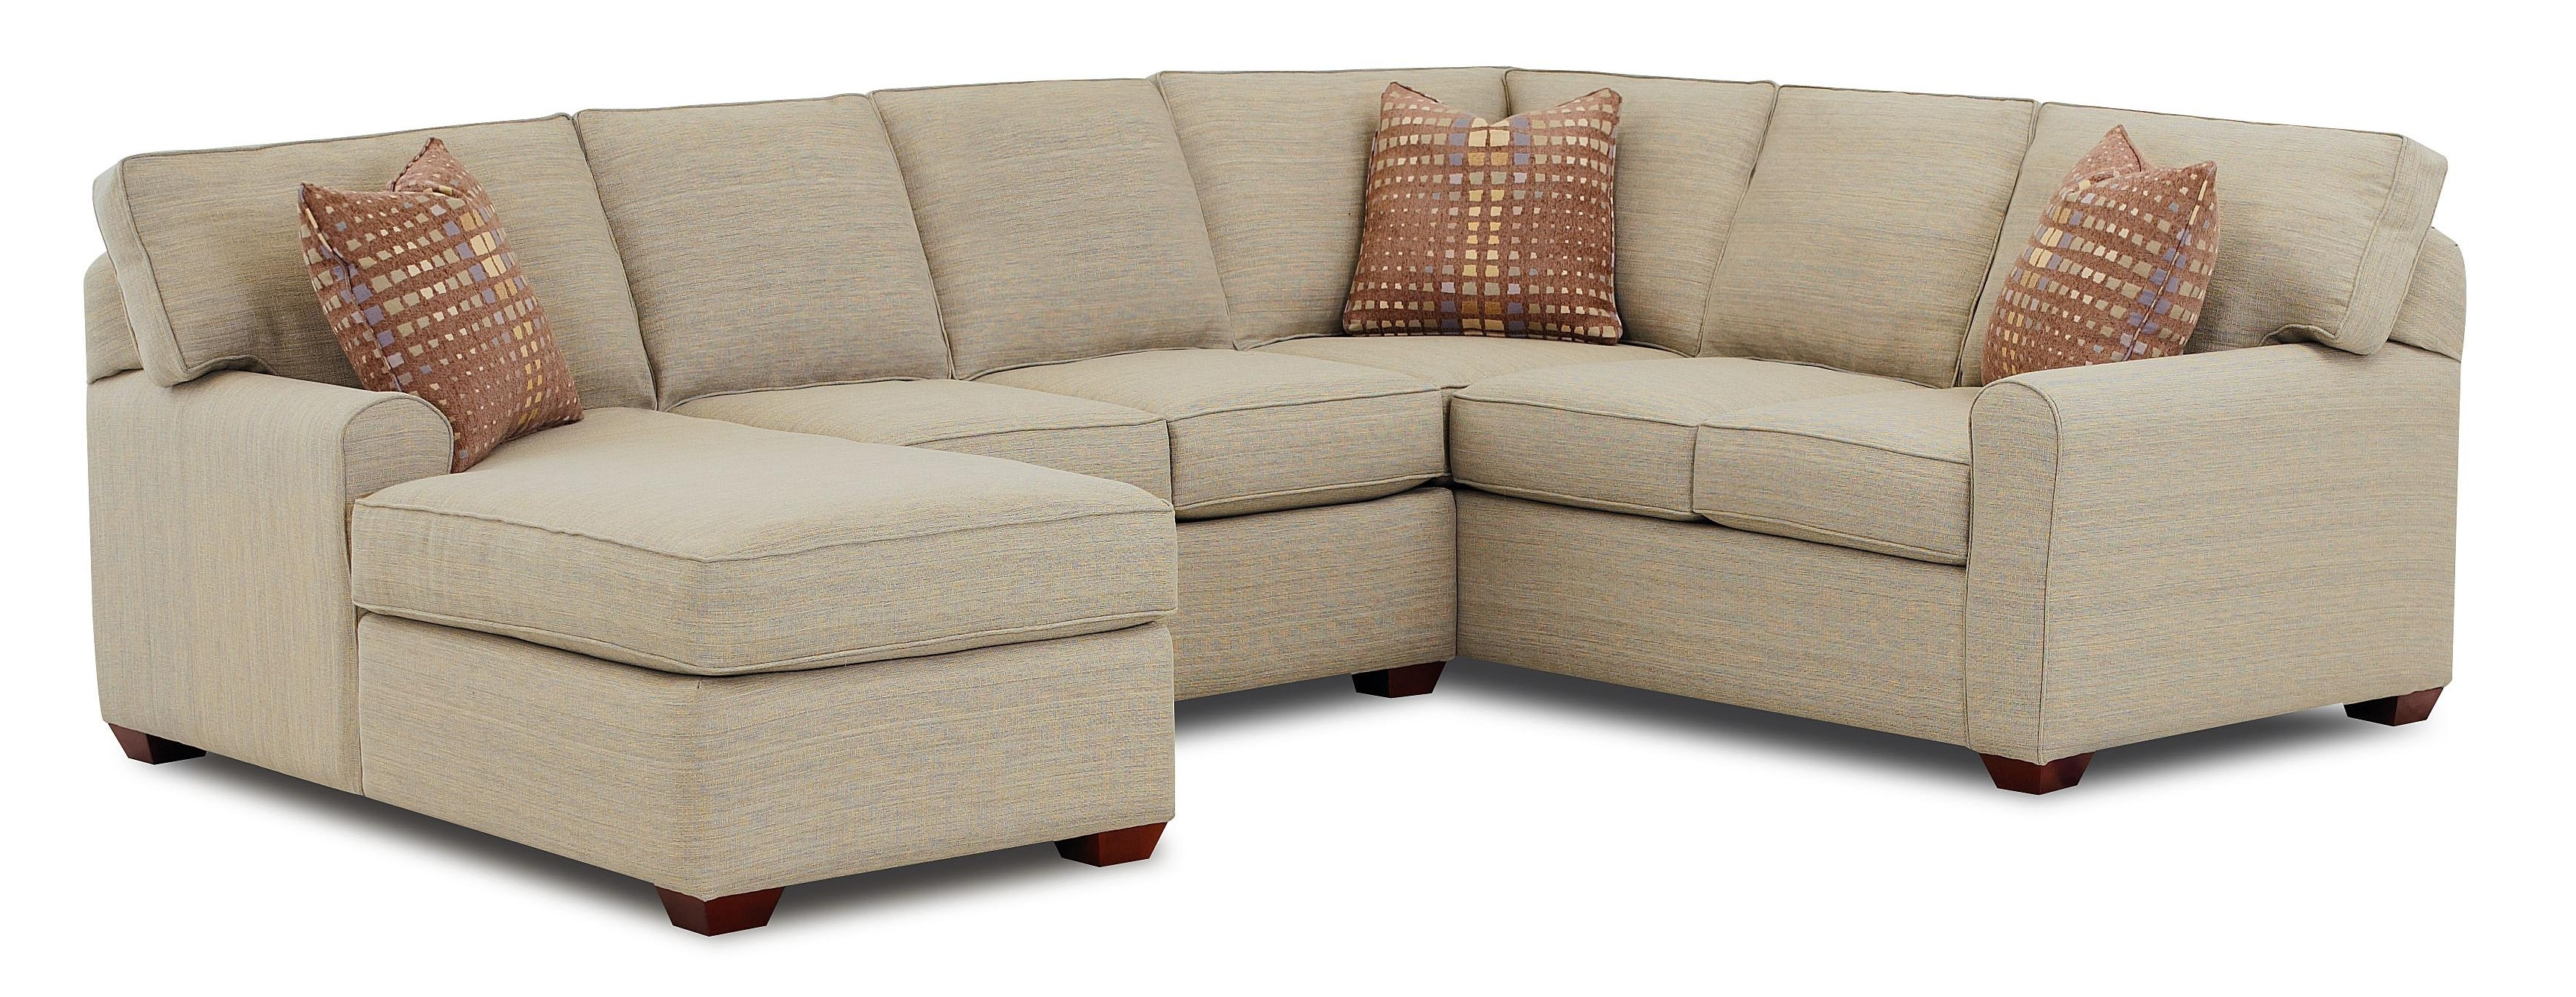 Favorite Small Sectional Sofas With Chaise In Fascinating Small Sectional Sofas With Chaise 82 For Your (View 5 of 15)